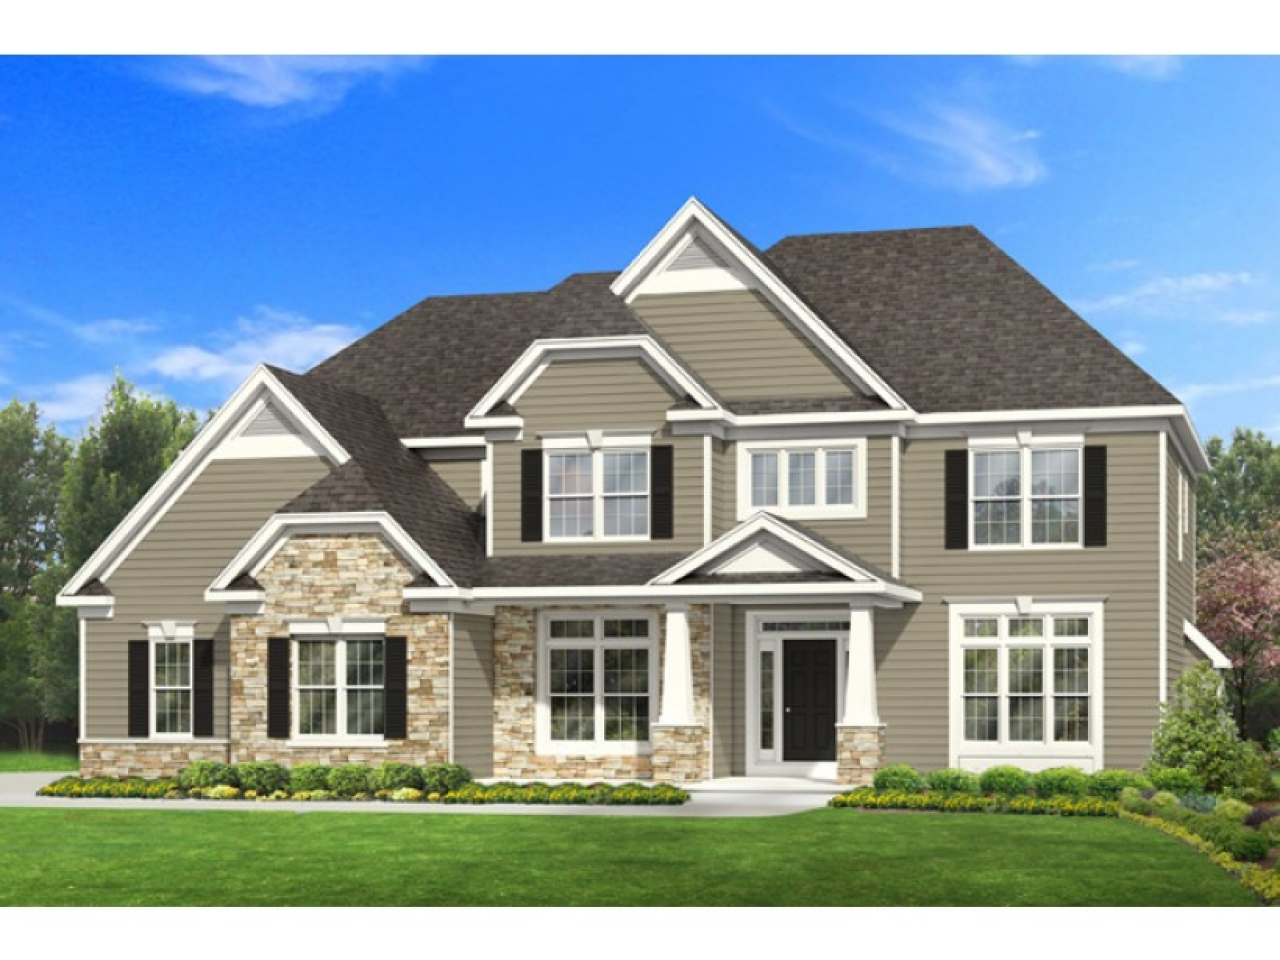 Long lots blueprints 3 bedroom 1 story 2 story 4 bedroom for Two storey house plans with 4 bedrooms